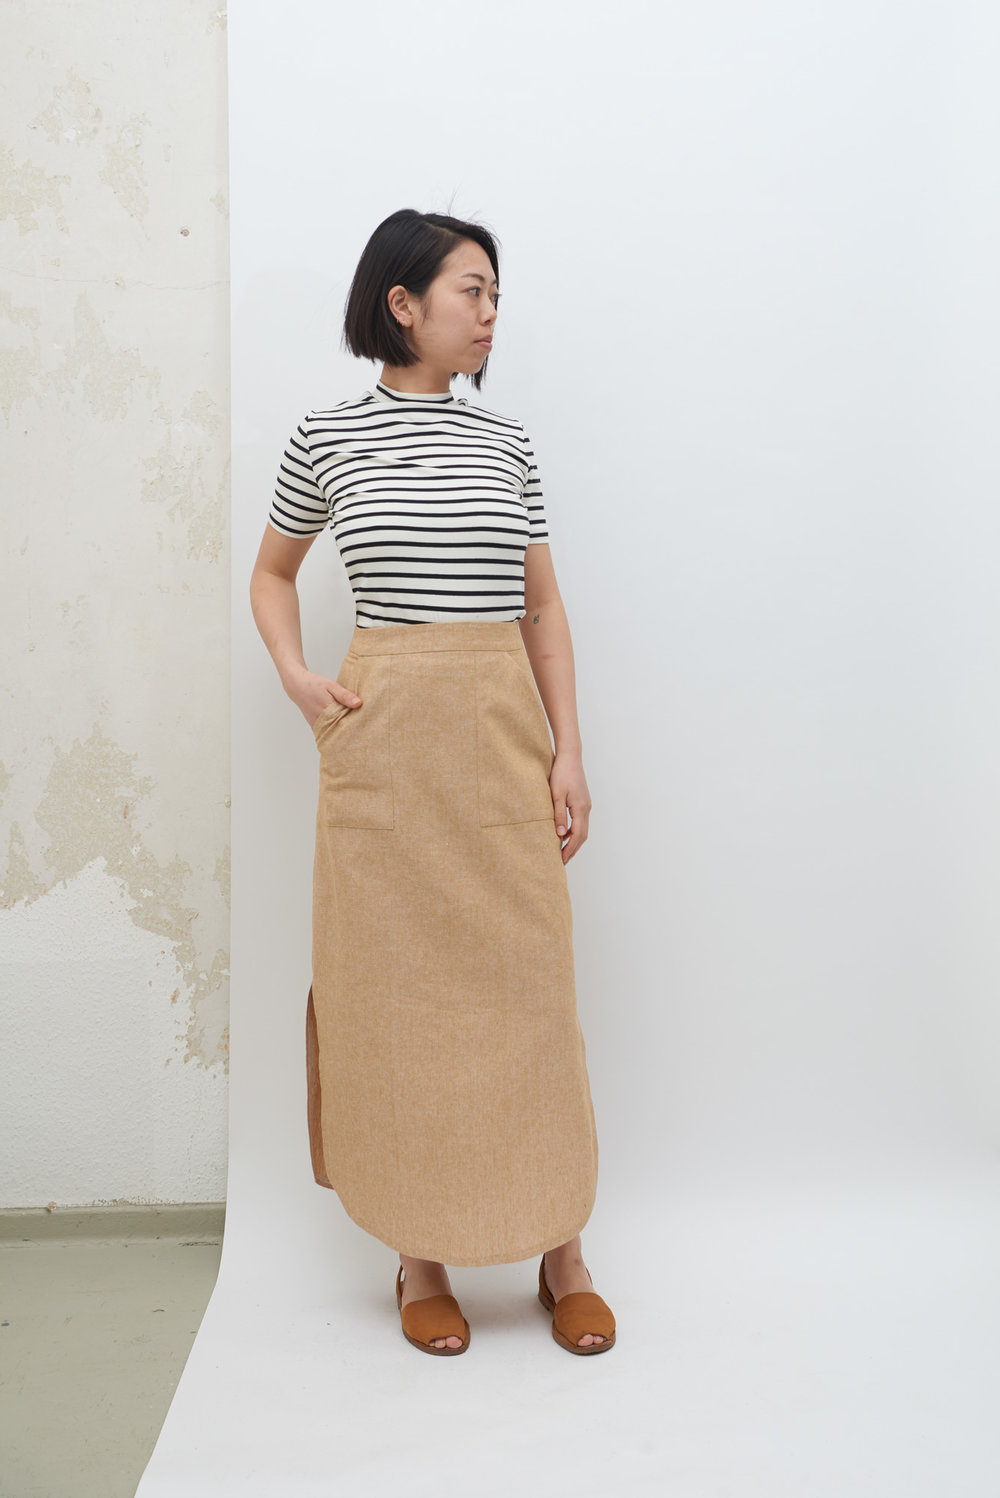 Poketto Skirt - Desert